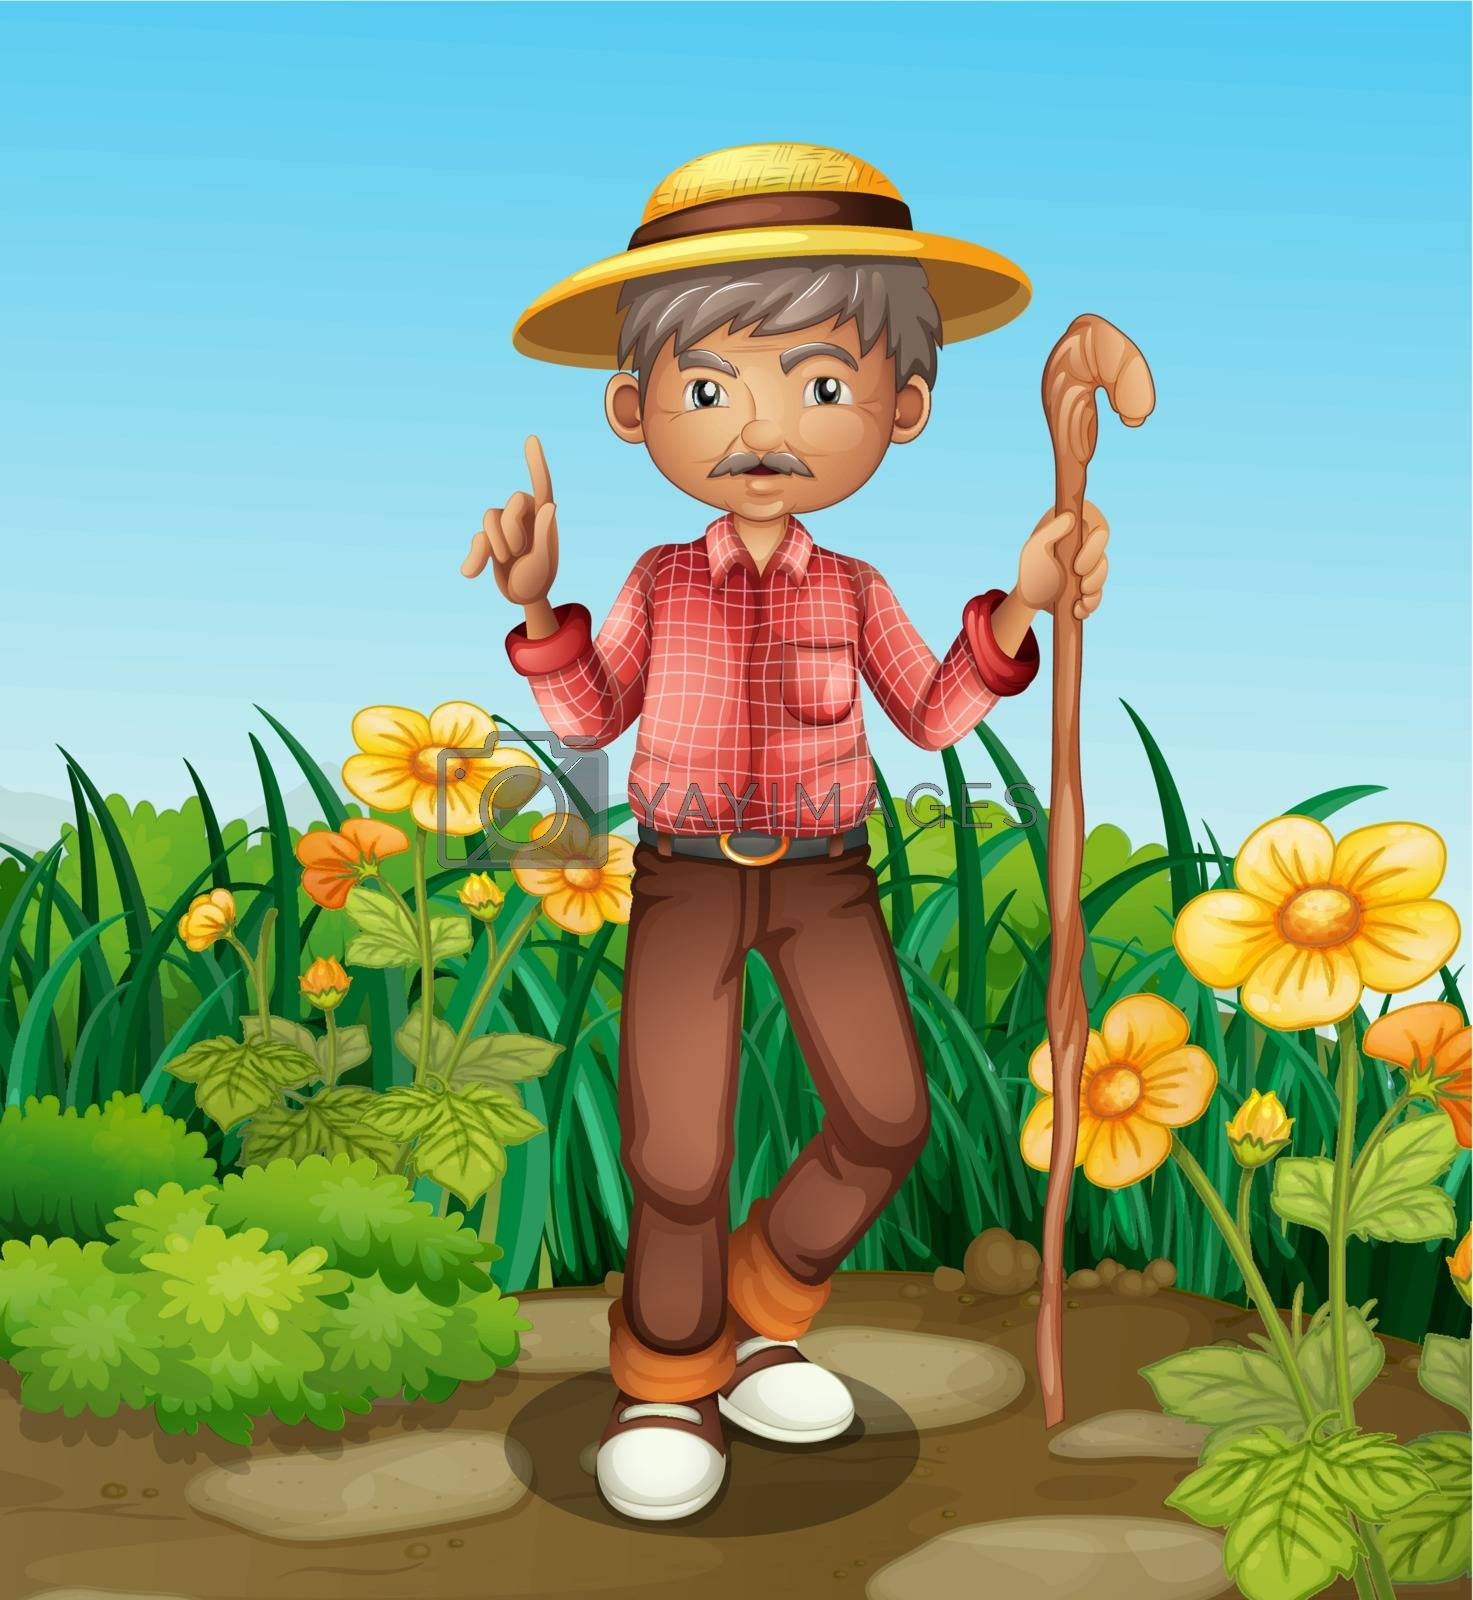 Illustration of an old man with a cane standing at the garden